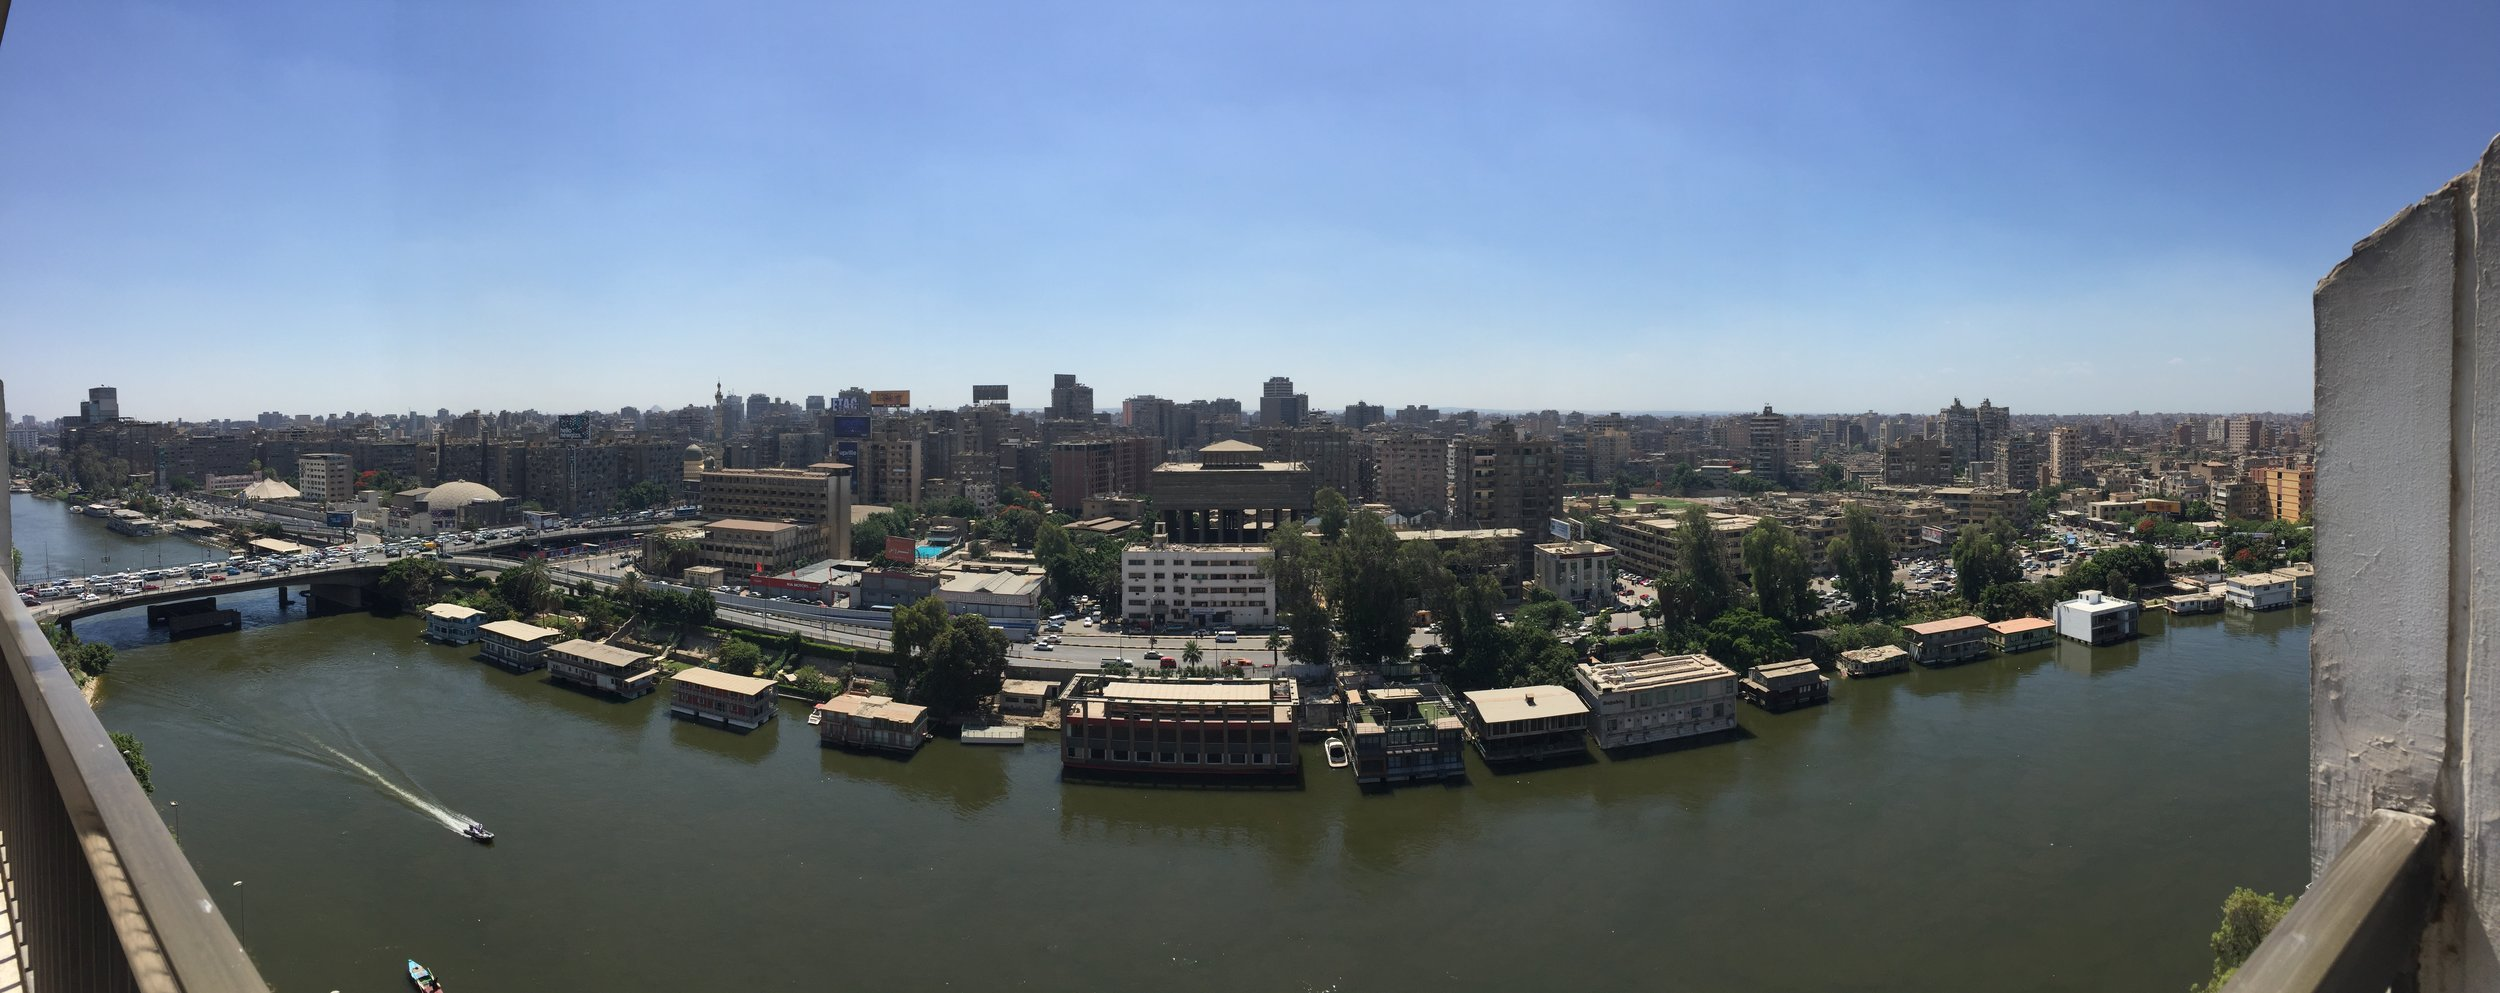 The view from our room at the Om Kolthoum.